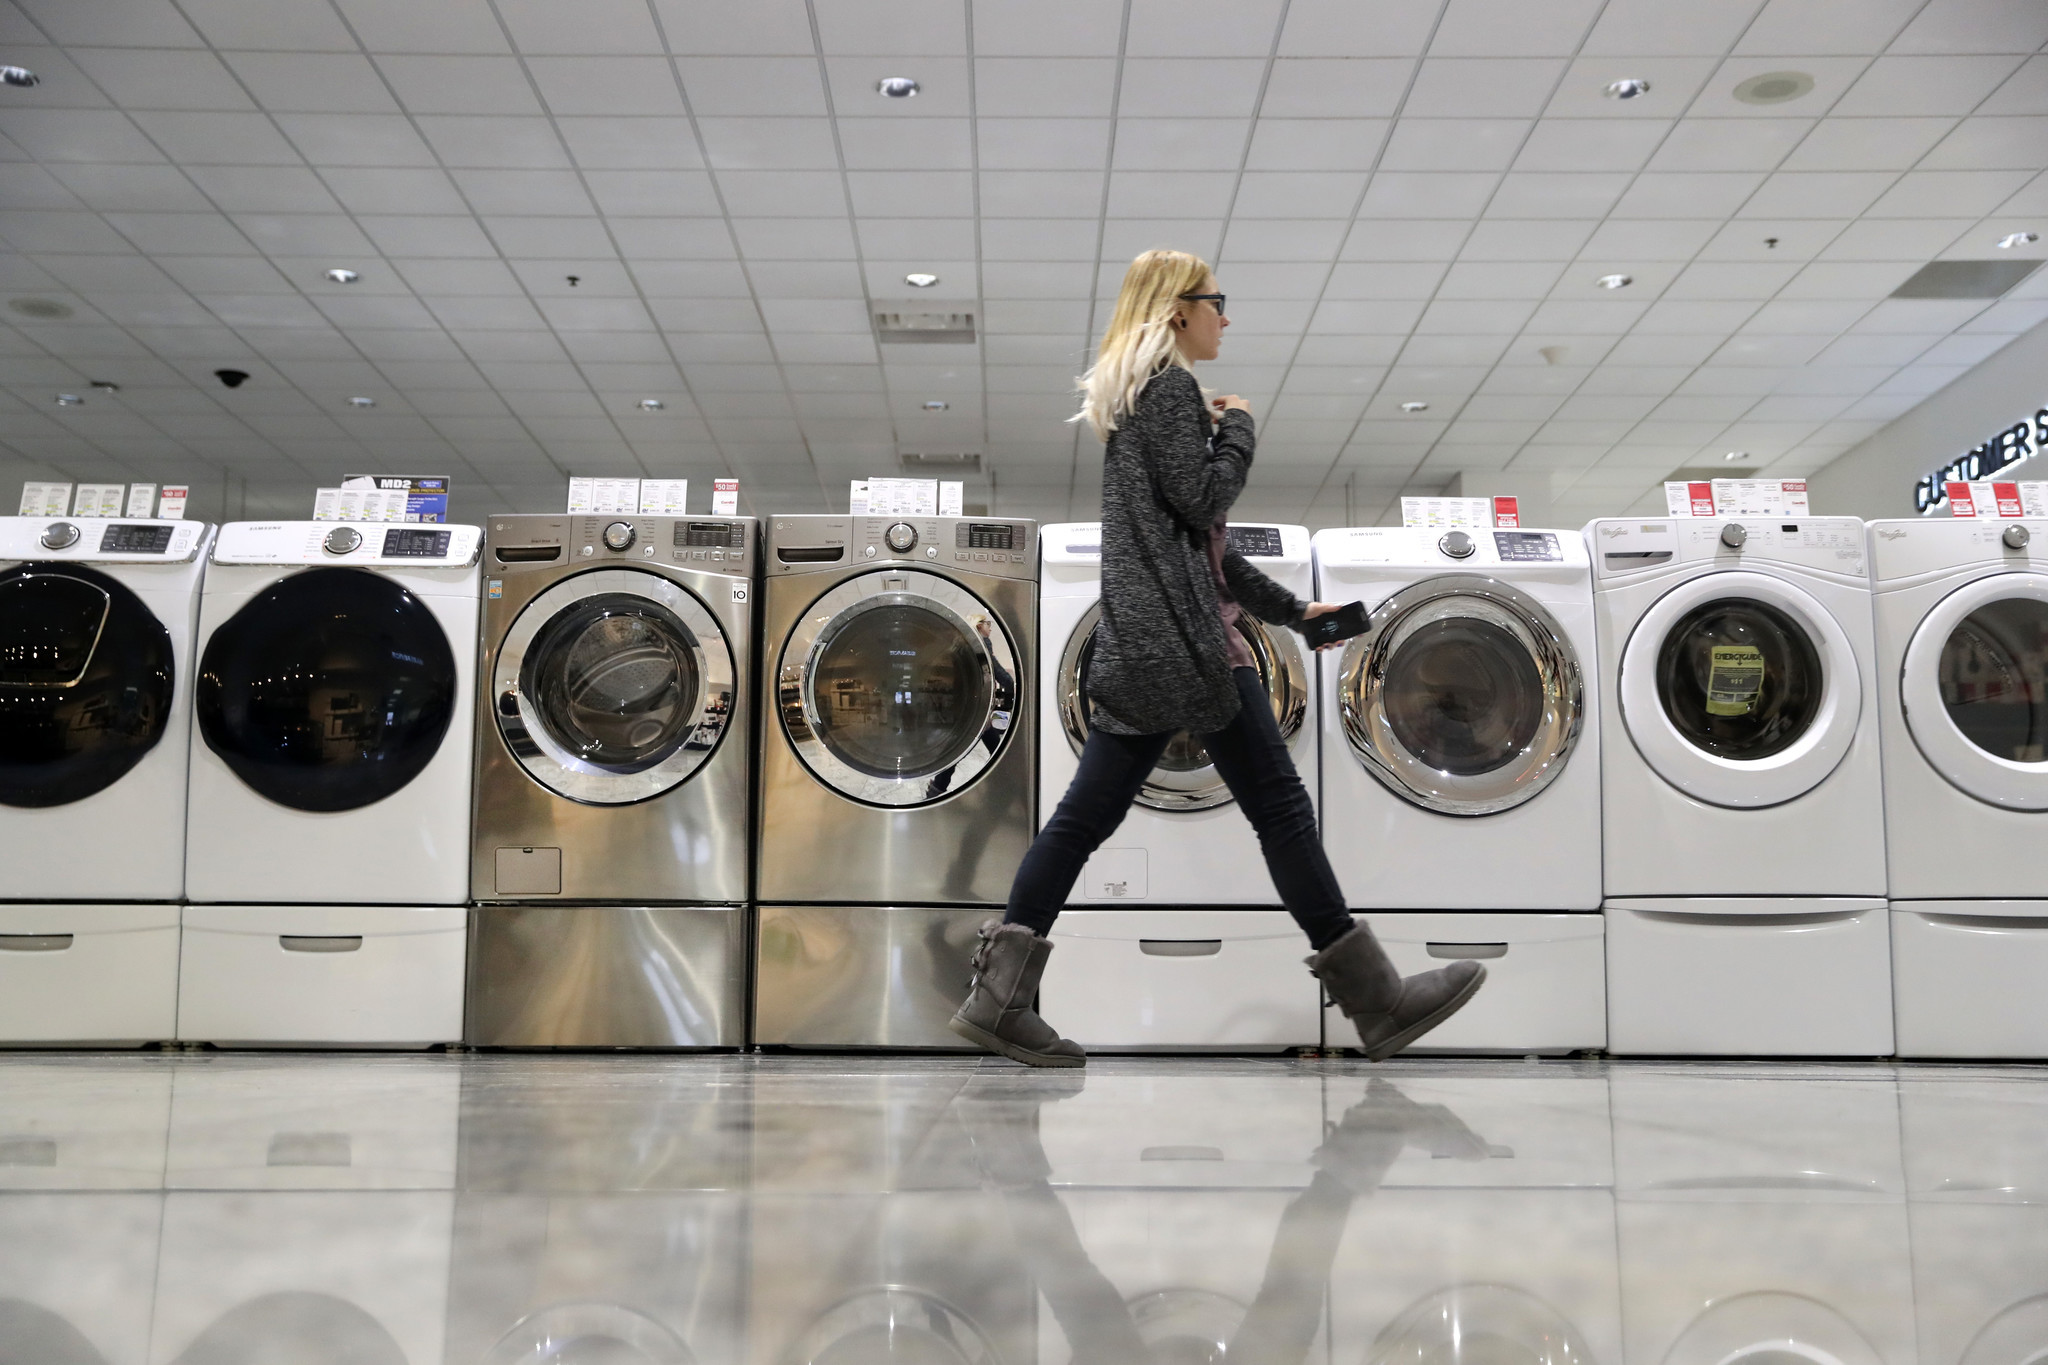 LG To Hike Washing Machine Prices In Response To Trumpimposed - Abt washers